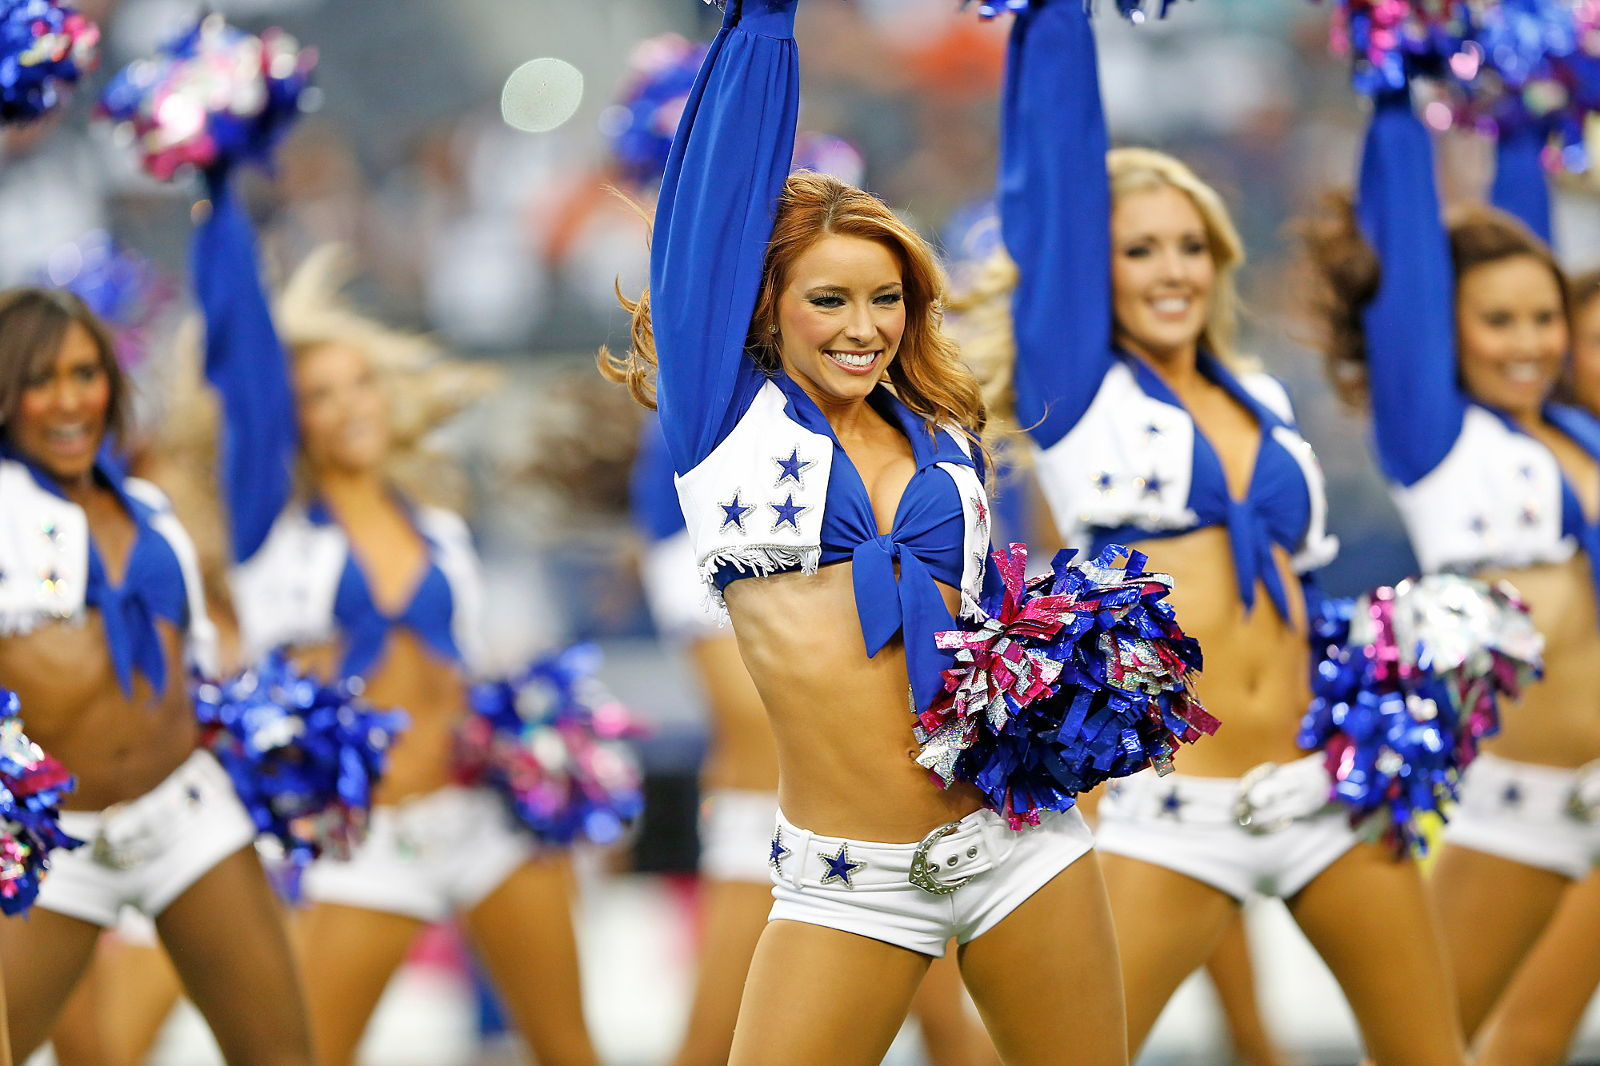 Dallas Cowboys Cheerleaders Rejuve Med Spa Dallas, TX